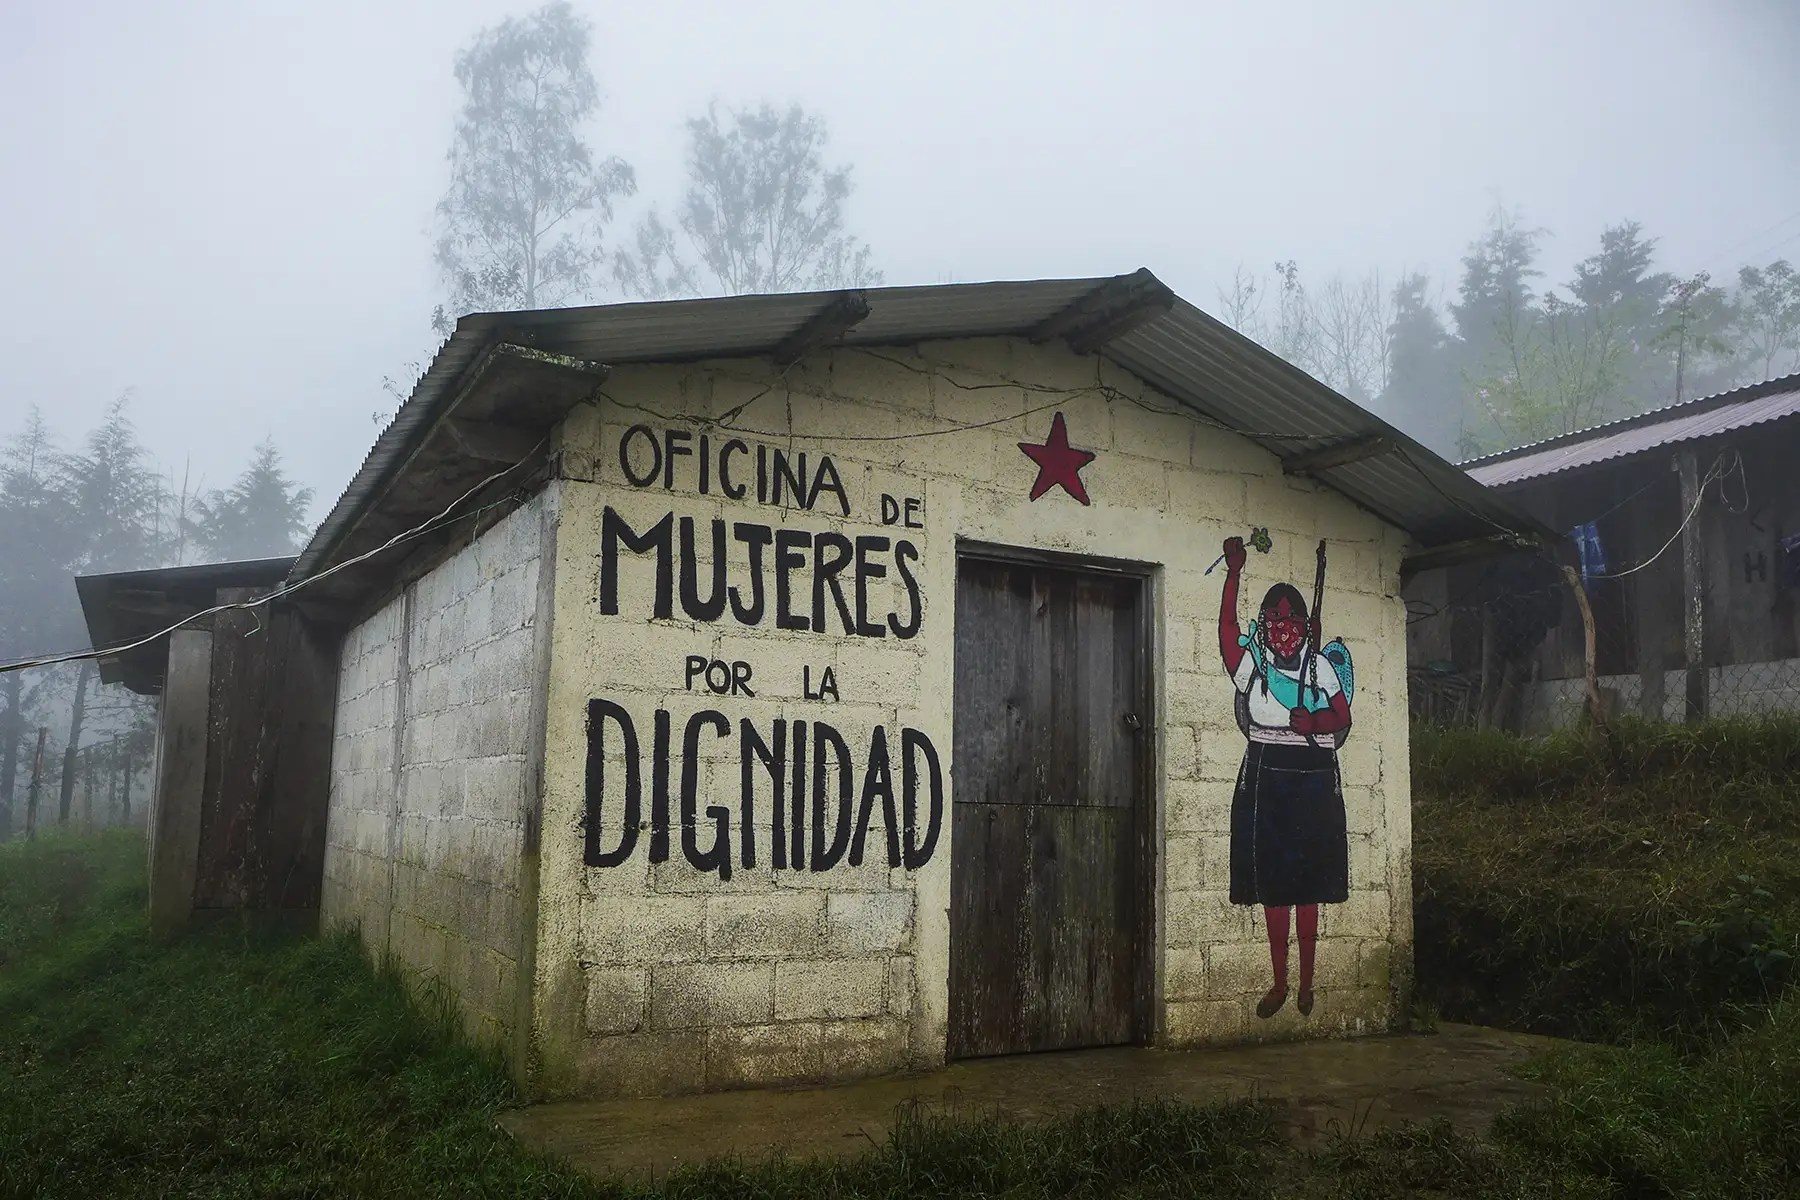 "The ""Office for Women and Dignity"" is pictured here. The Zapatista women have a strong say in the running of community affairs, as both men and women are equal according Zapatista doctrine. Women hold many positions of leadership in the organization, including as military commanders."